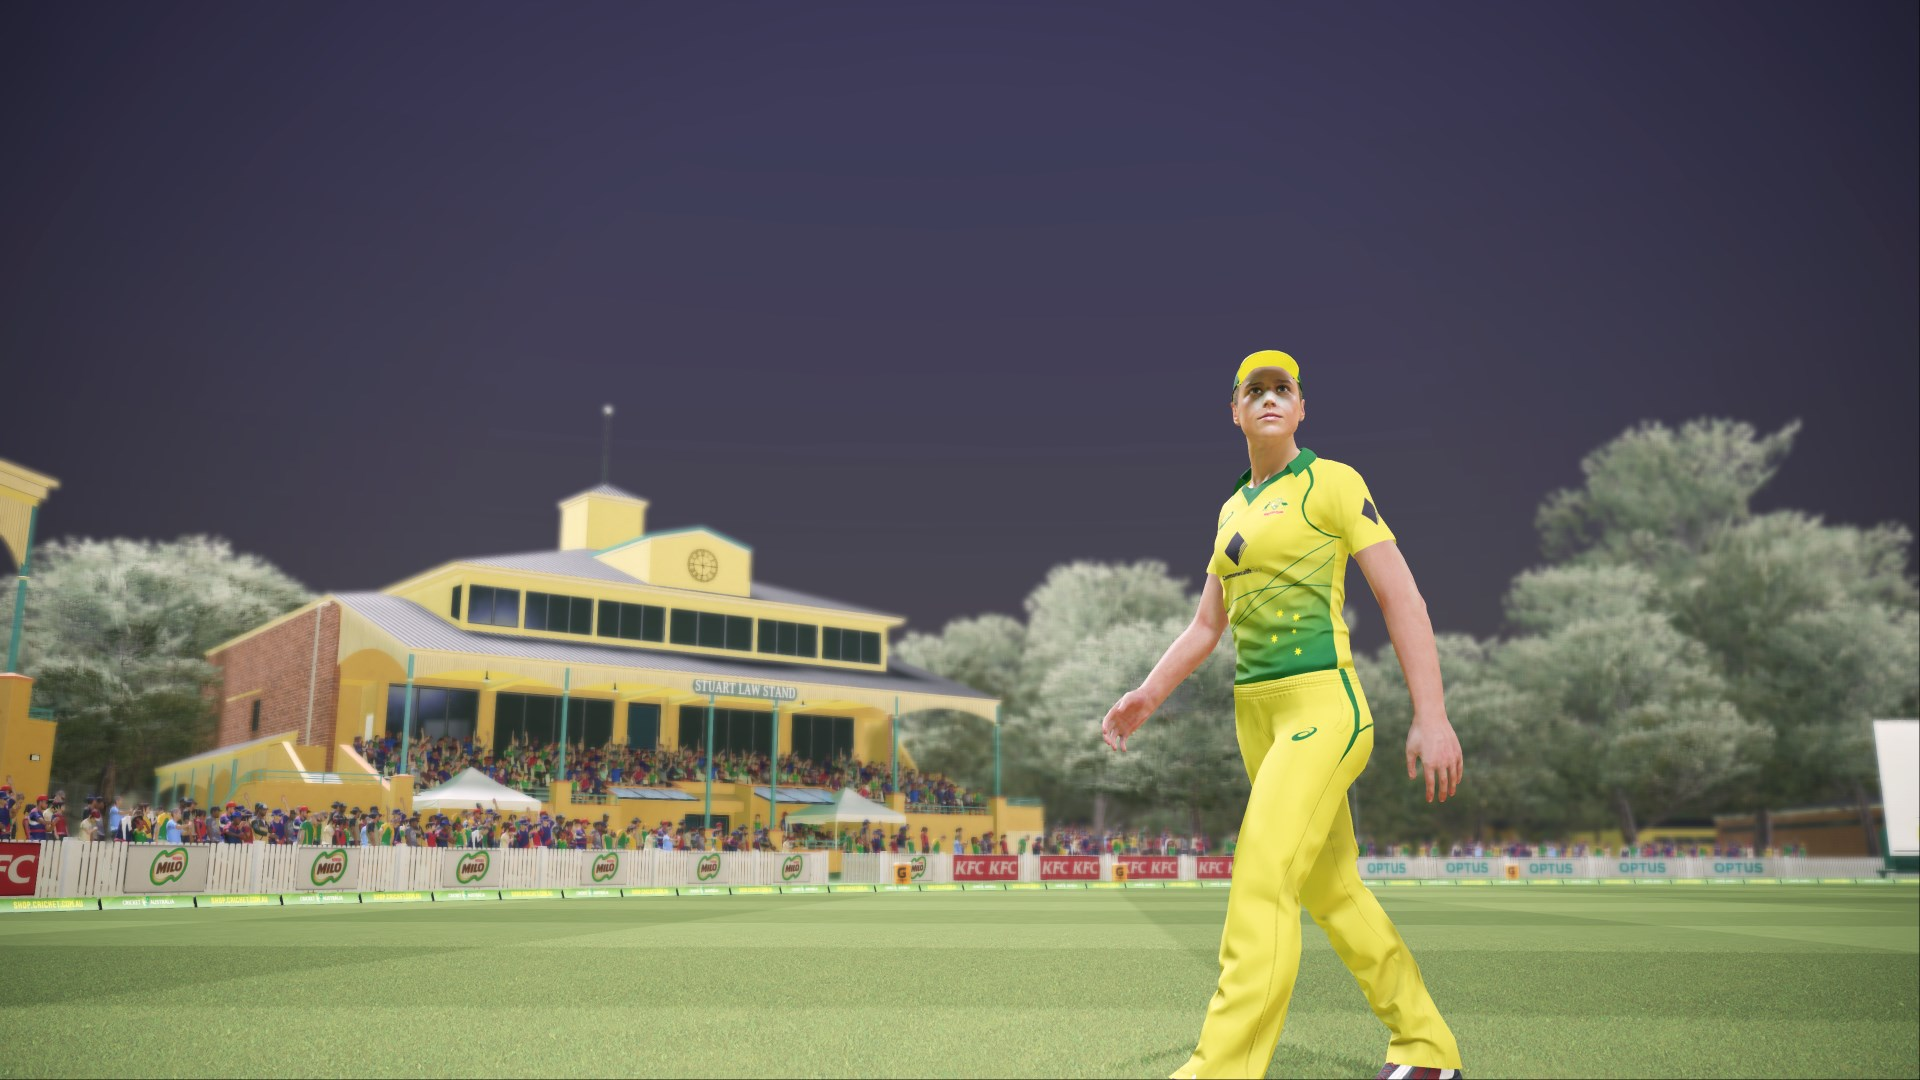 ASHES CRICKET скриншот 1